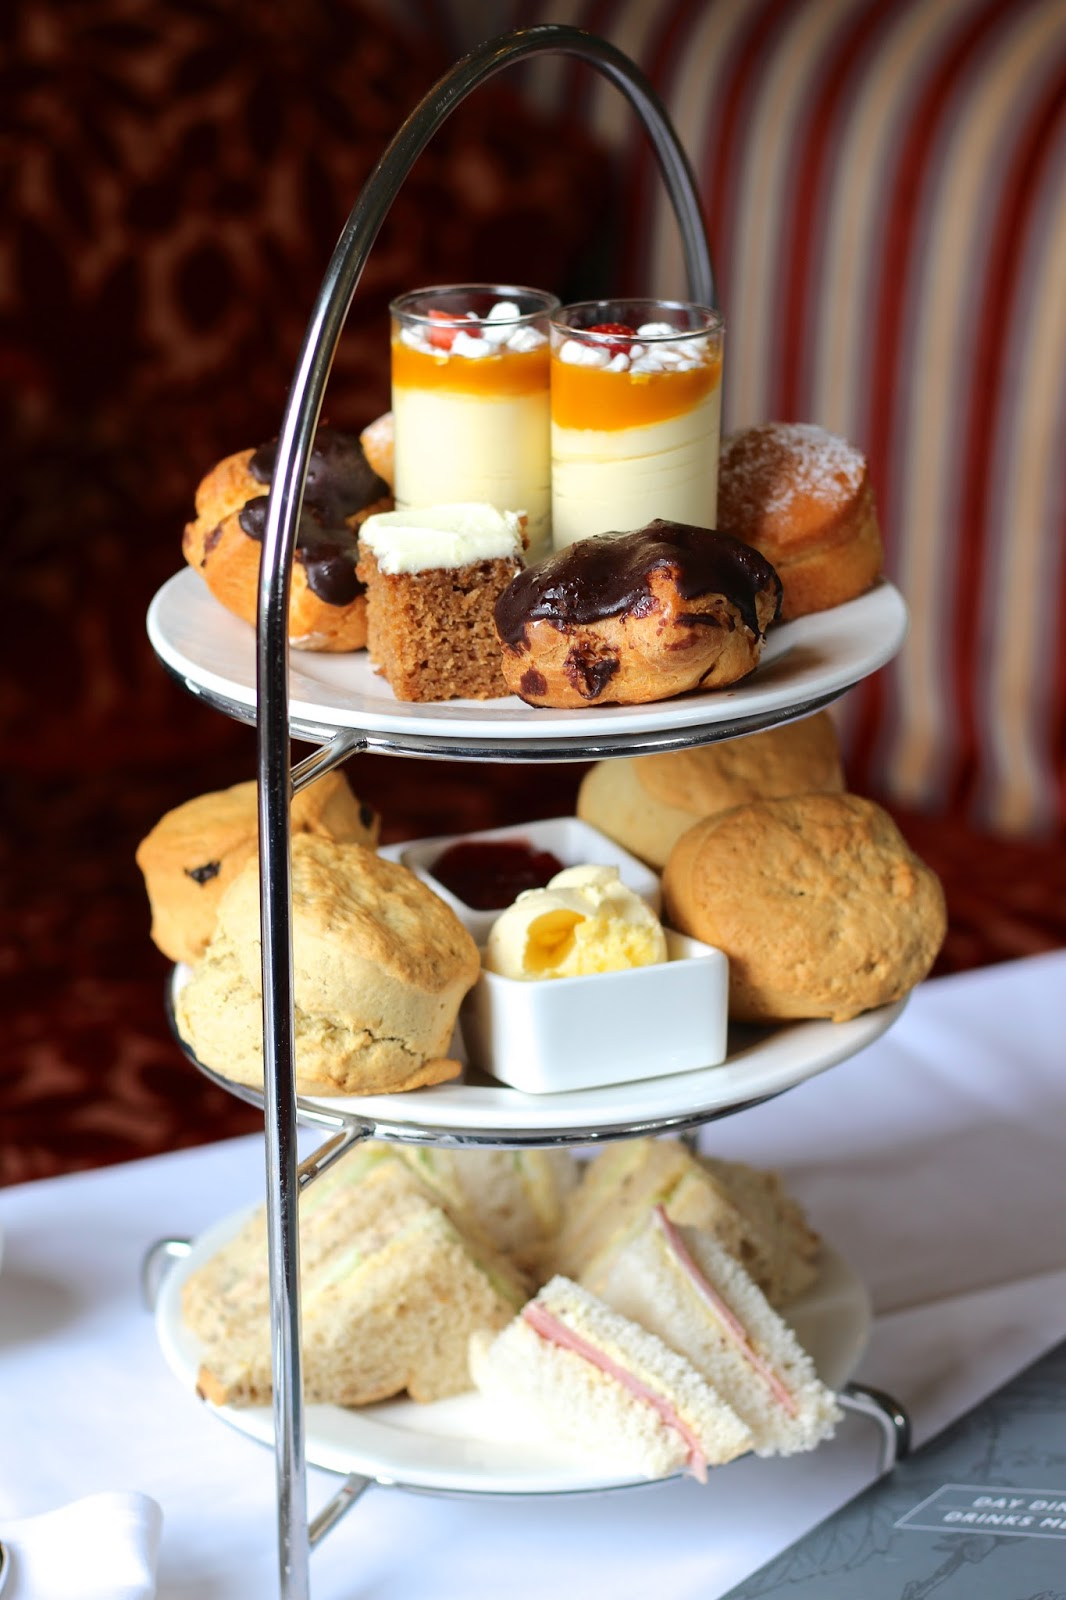 Luxury afternoon tea for two in the lake district